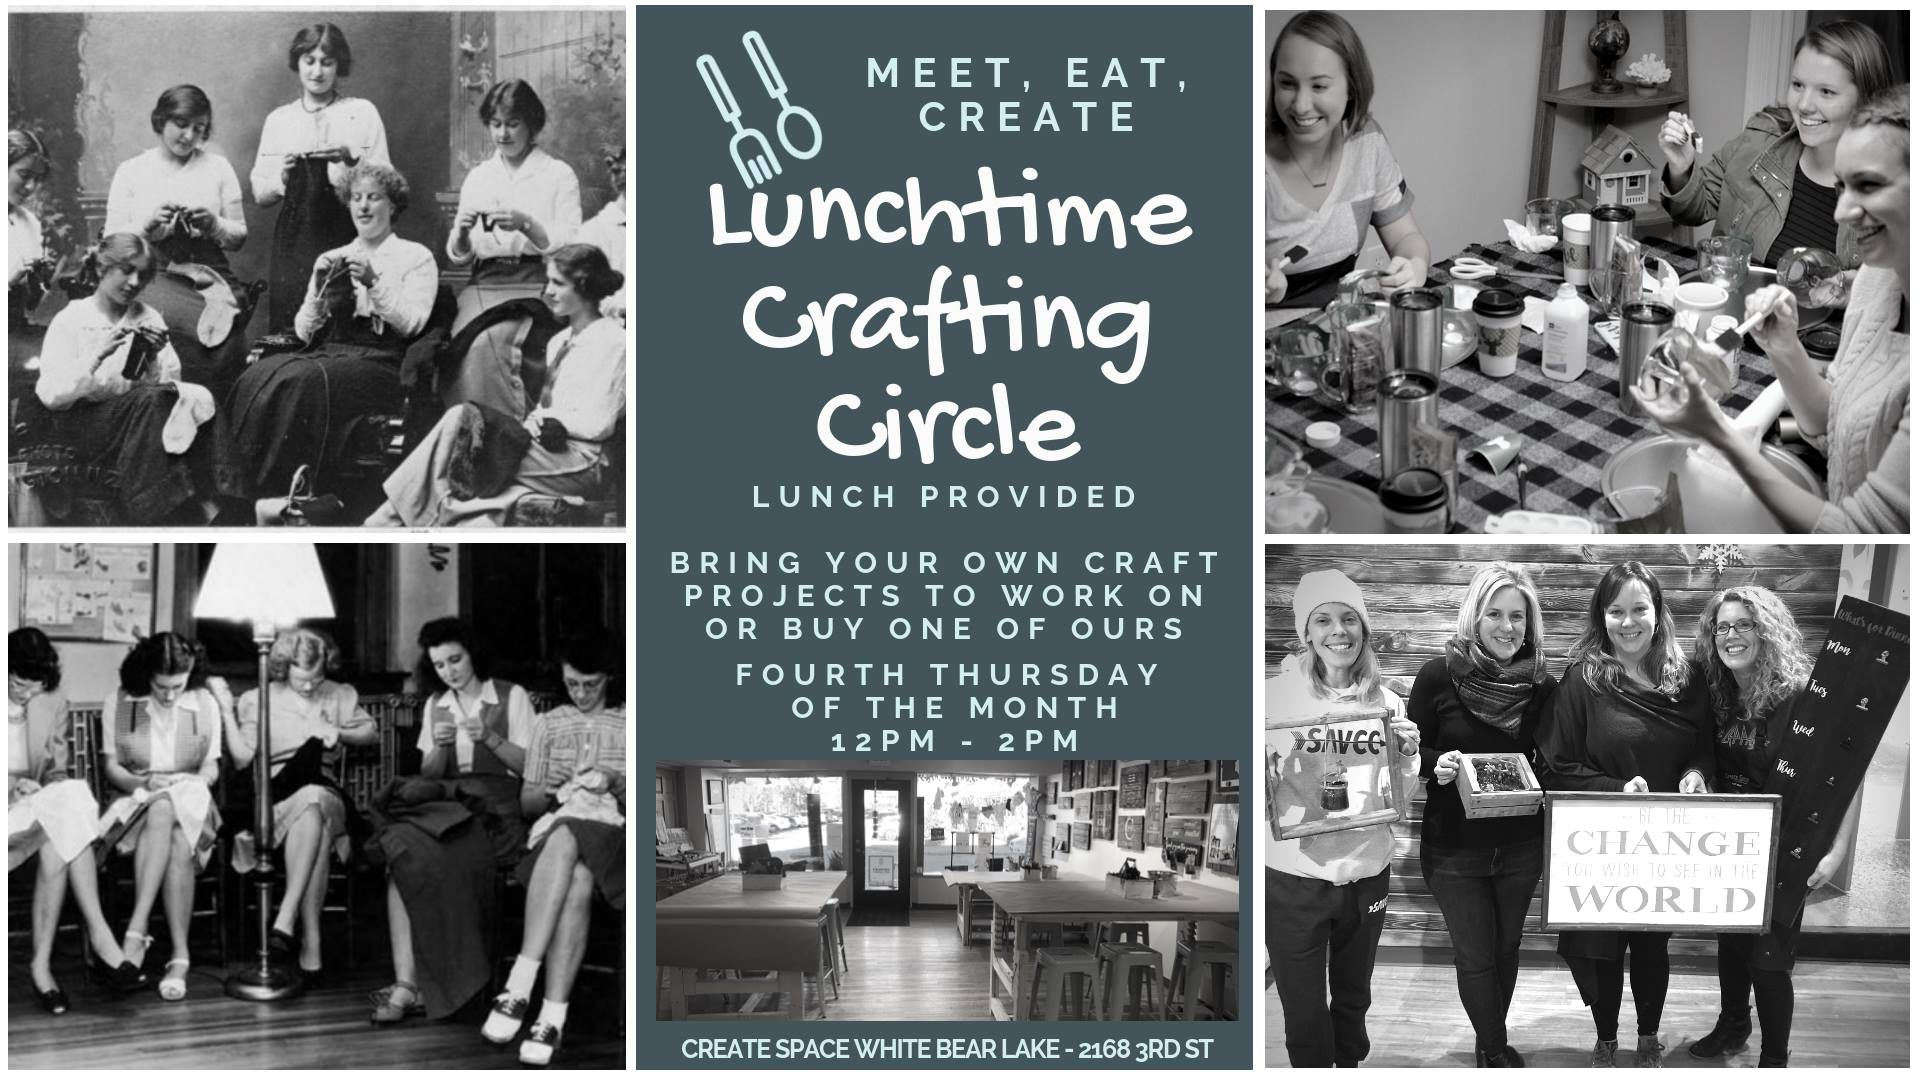 Image depicting our unchtime Crafting Circle event information.